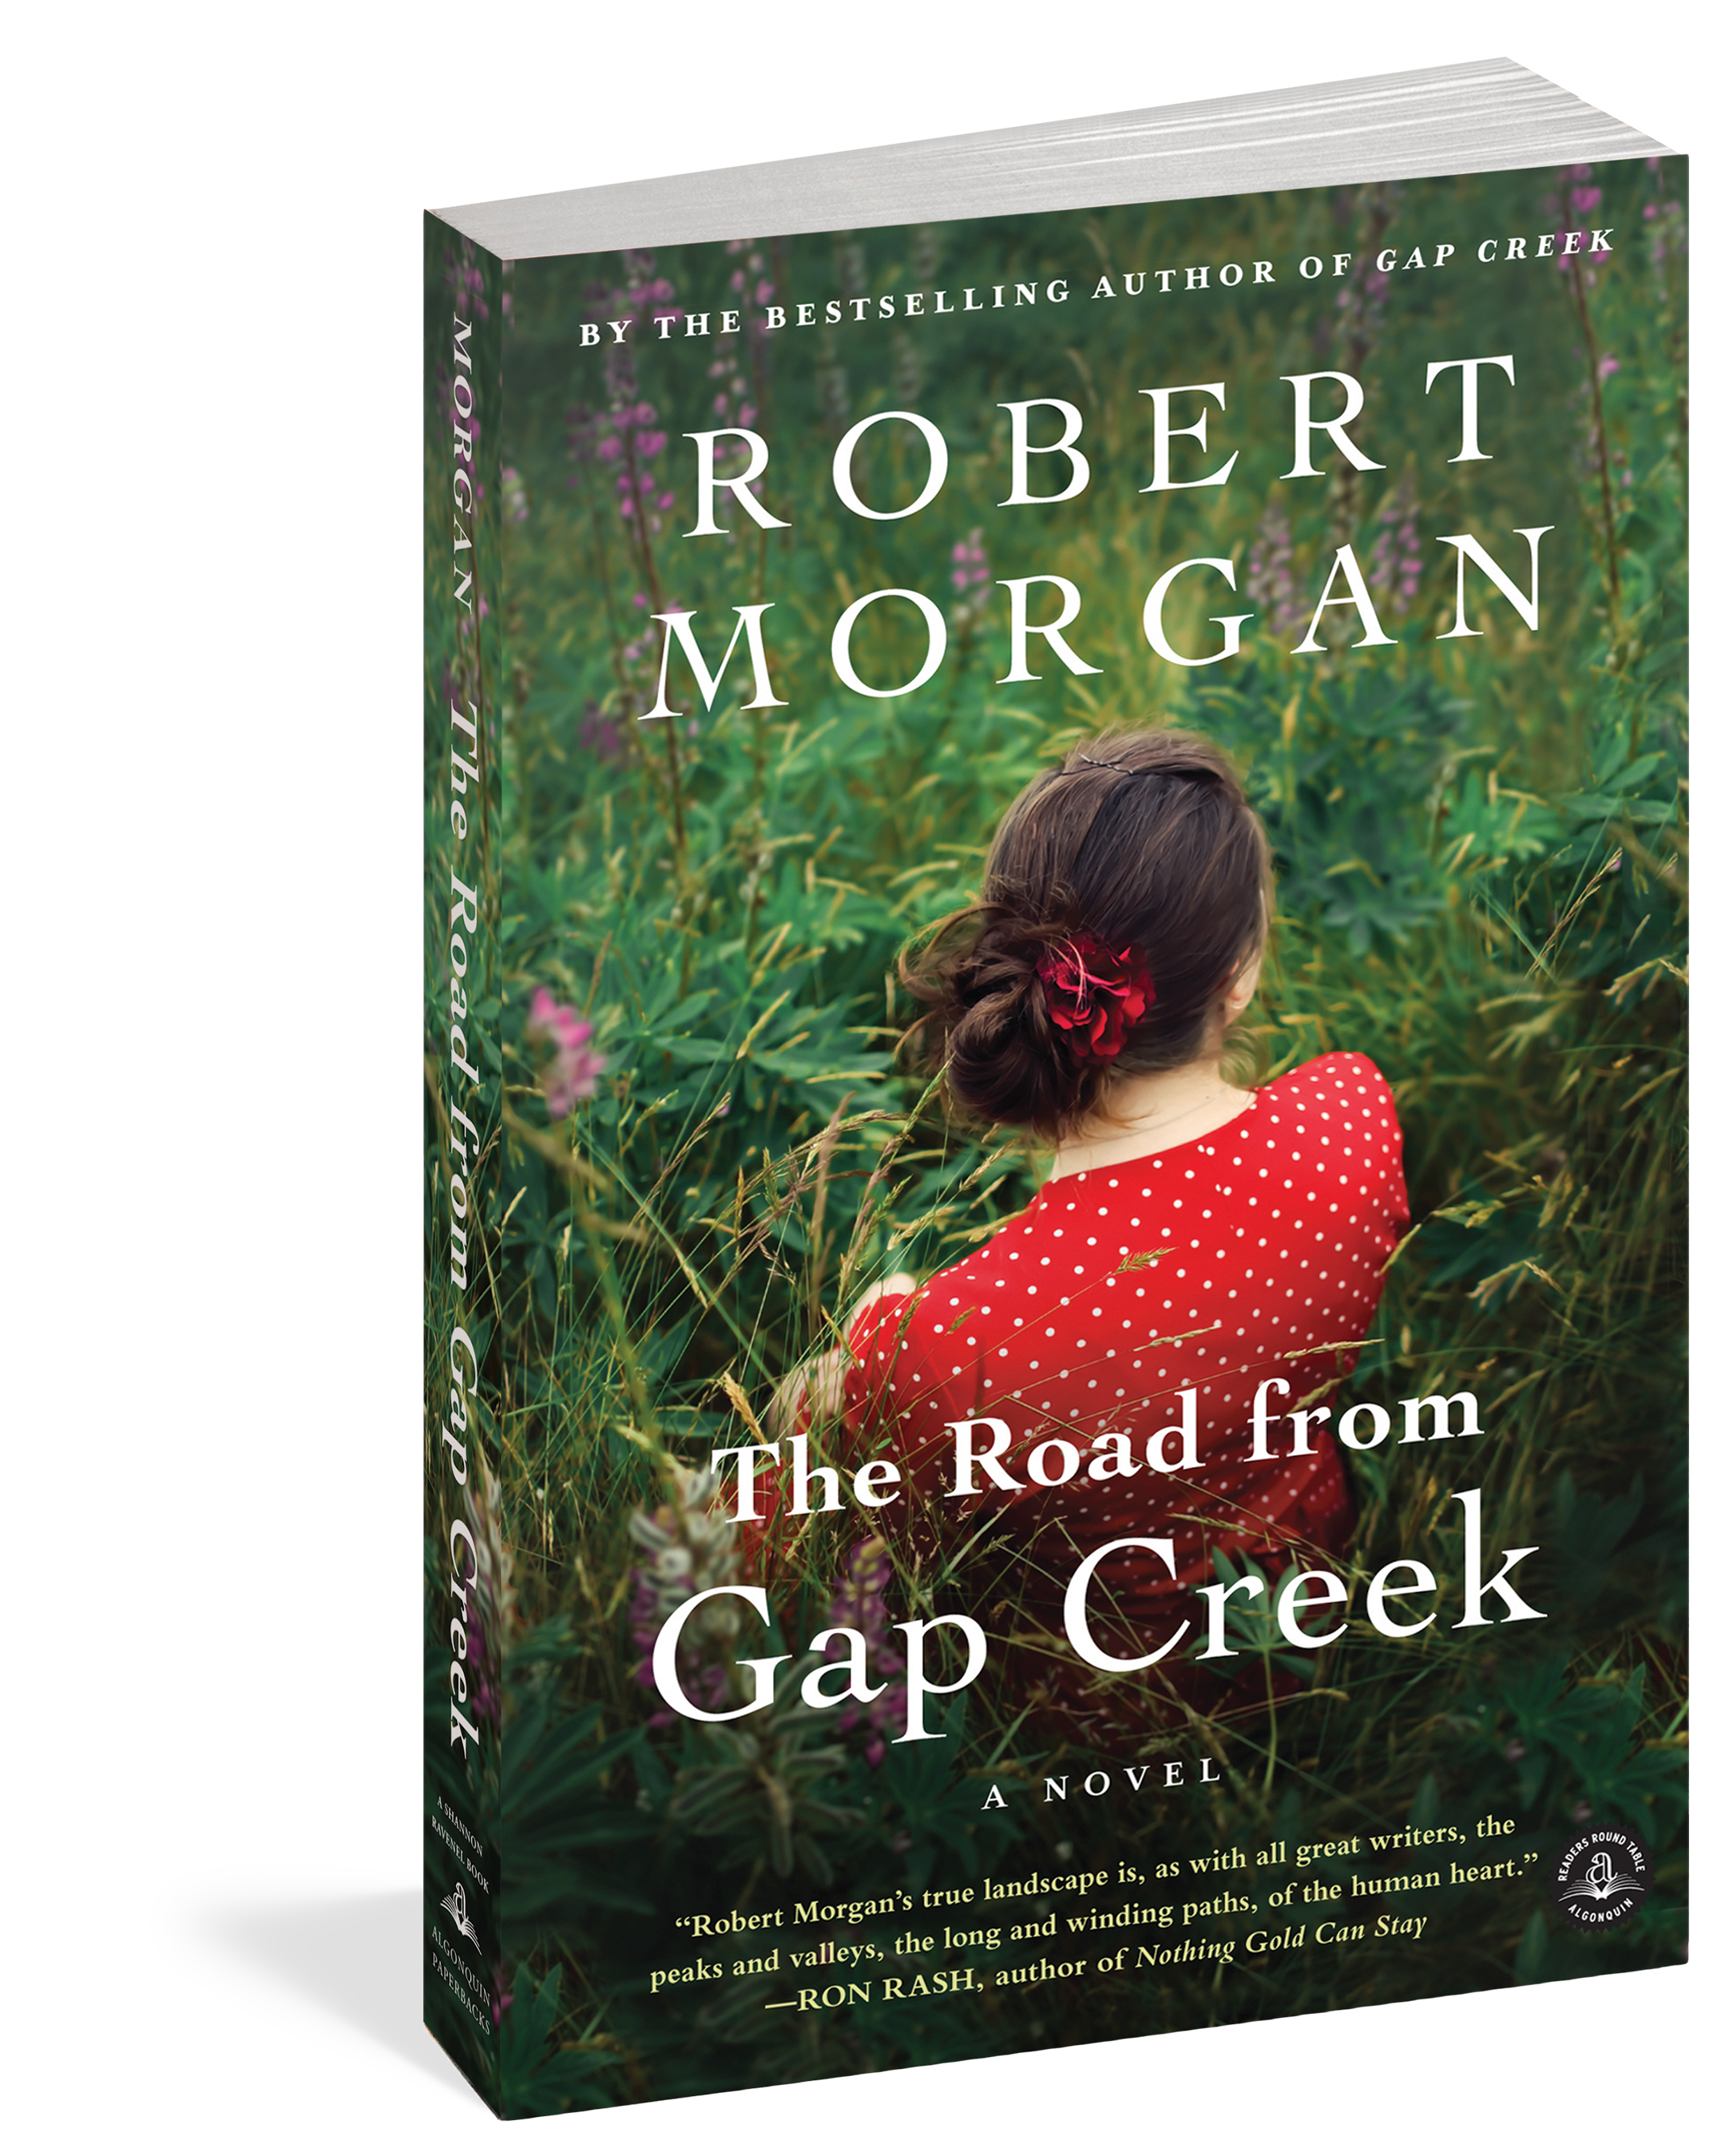 robert morgans novel essay Looking for books by robert morgan see all books authored by robert morgan, including gap creek : the story of a marriage (oprahs book club), and boone, and more on thriftbookscom.